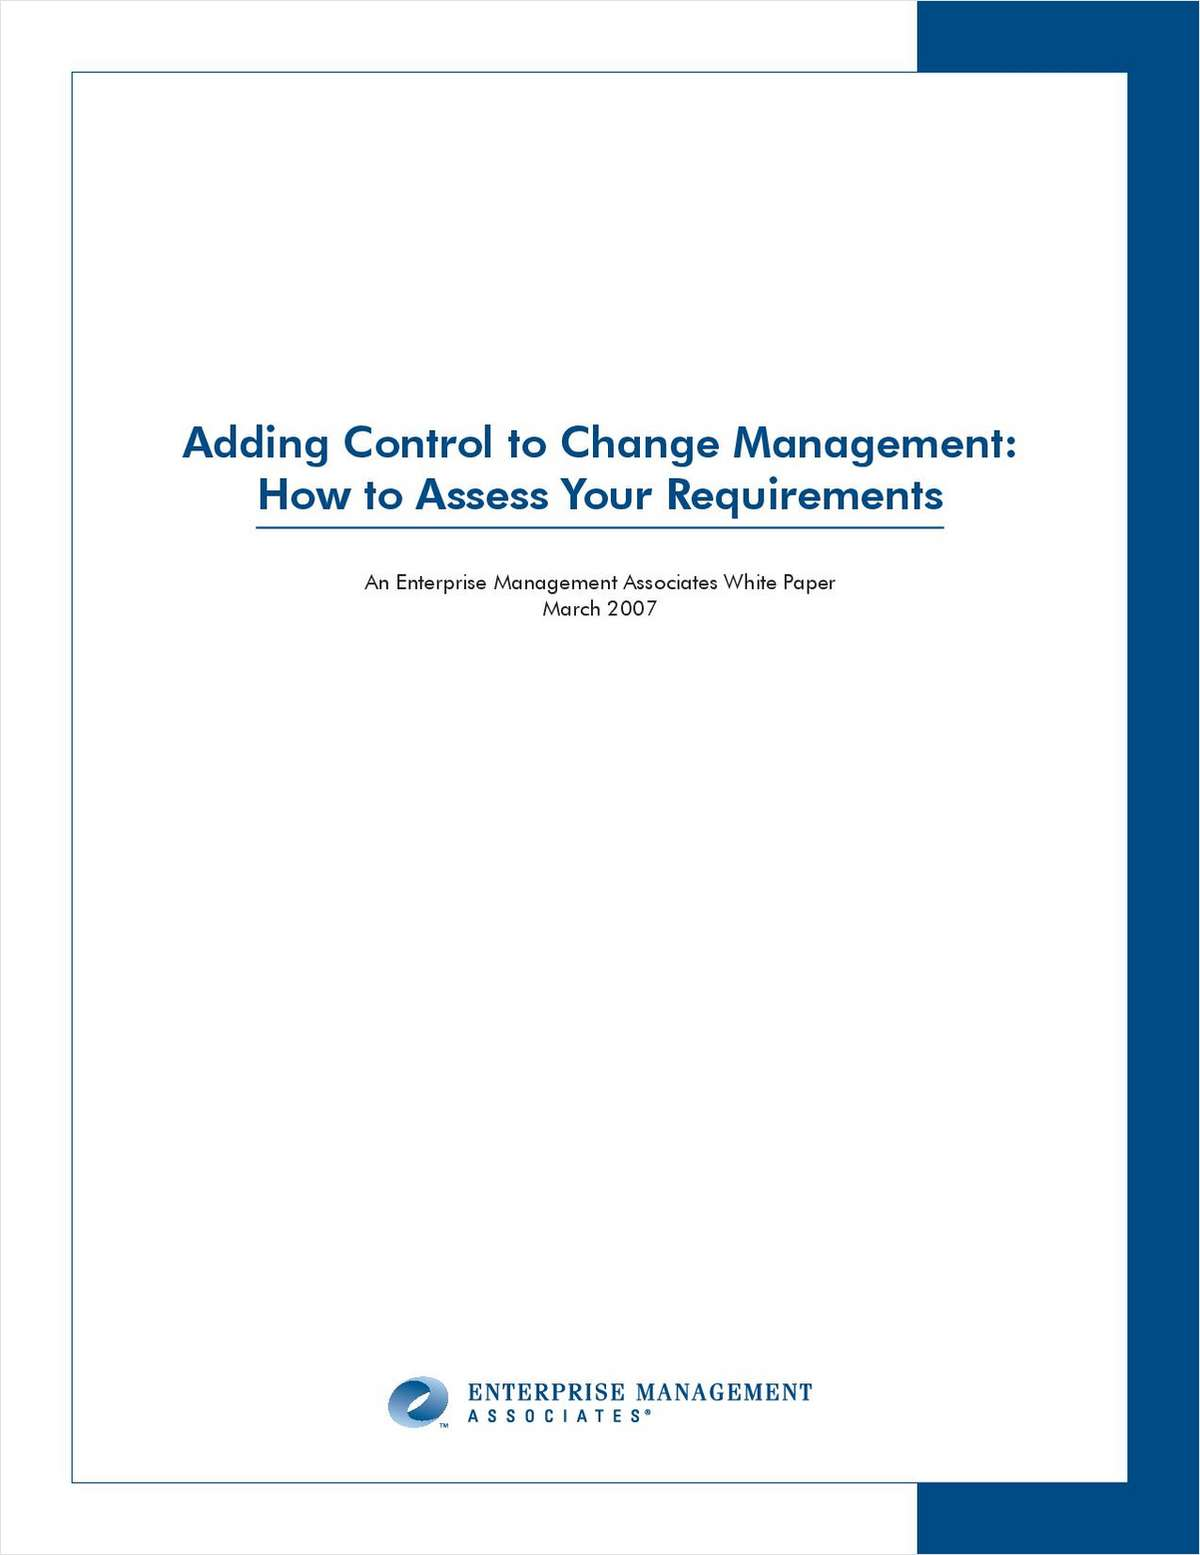 Adding Control to Change Management: How to Assess Your Requirements